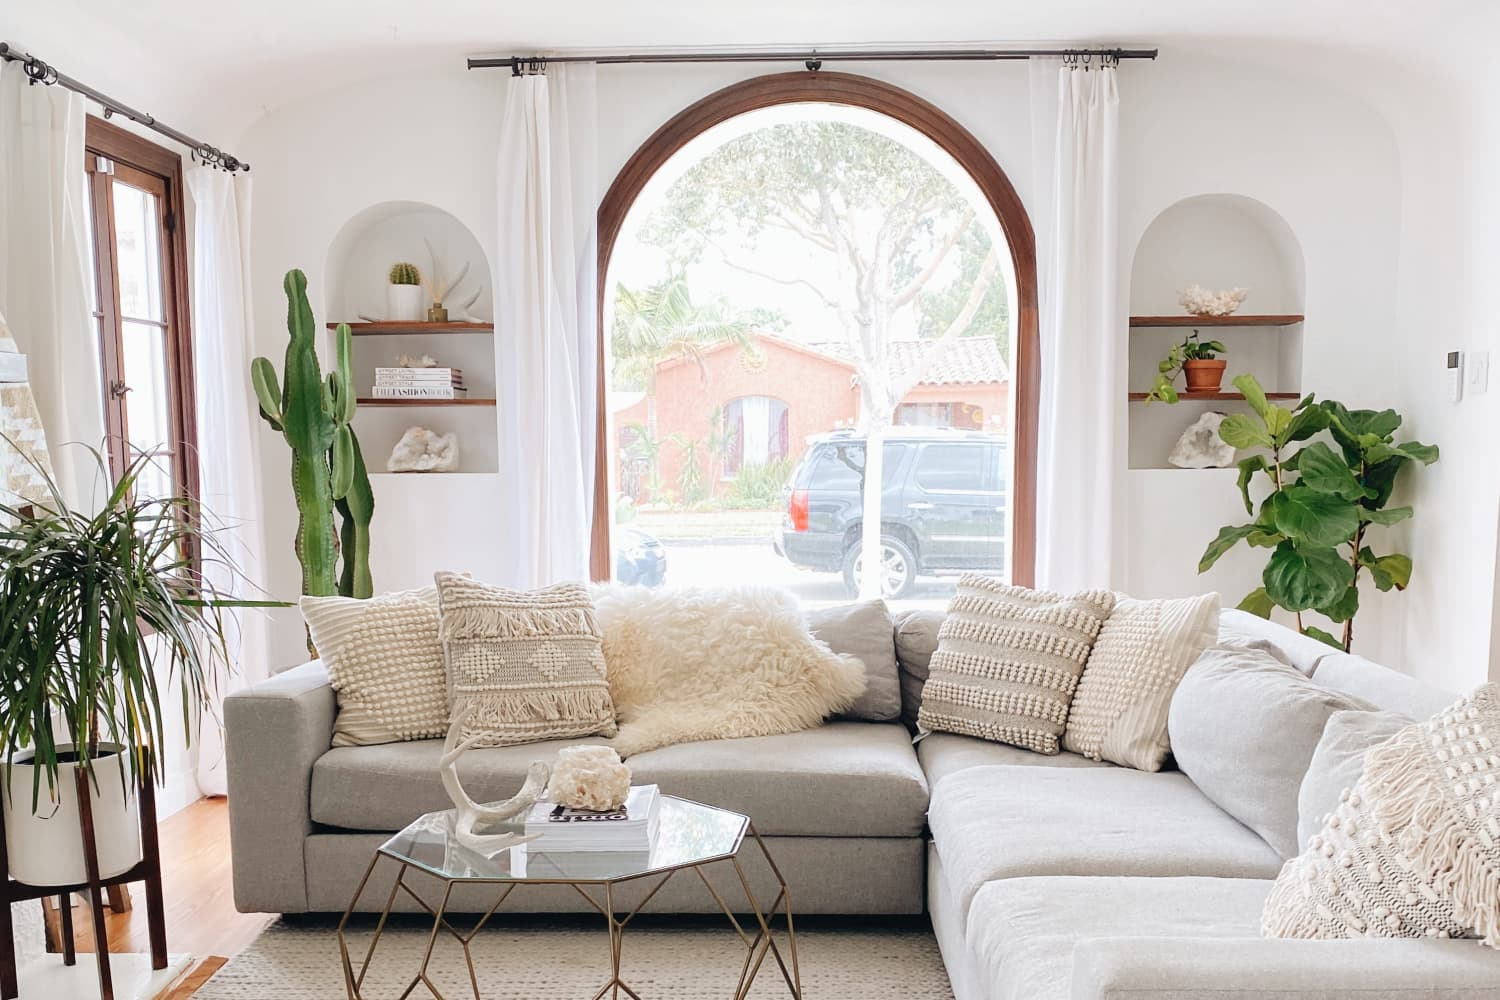 A 100-Year-Old Spanish Bungalow Has Beautiful Bones and Awesome Arches